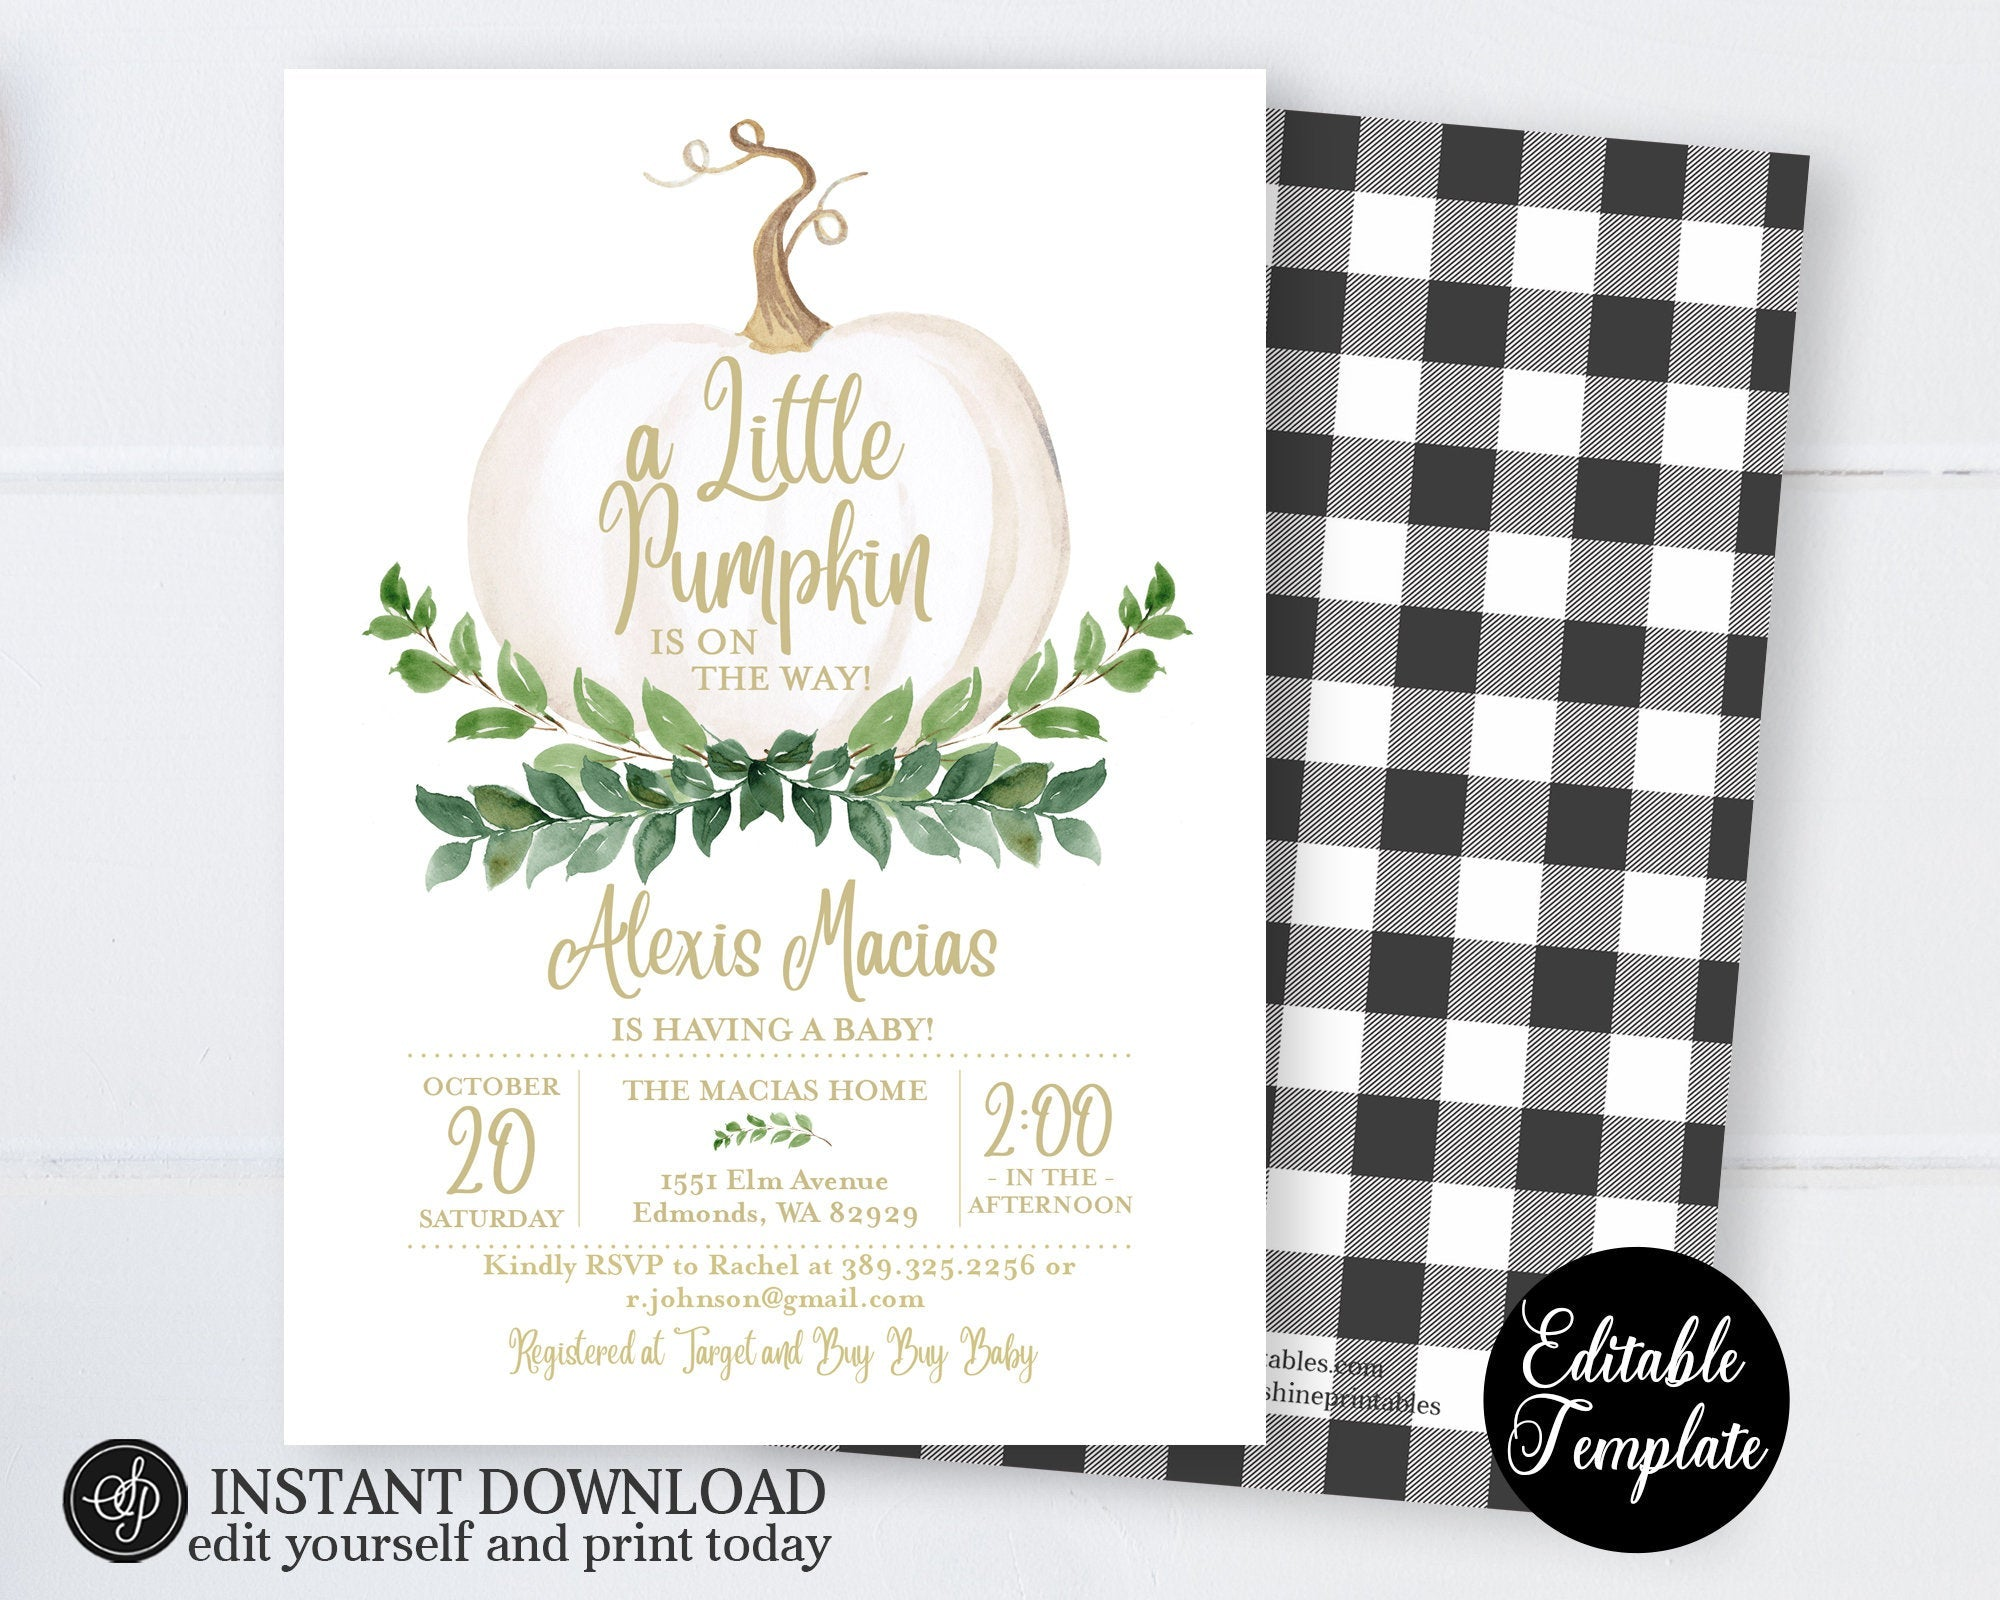 photograph relating to Printable Shower Invitations identify Minor Pumpkin Boy or girl Shower Invitation, Gender Impartial Slide Boy or girl Shower Invite, White Pumpkin, Greenery, Printable Invitation, SP0056A